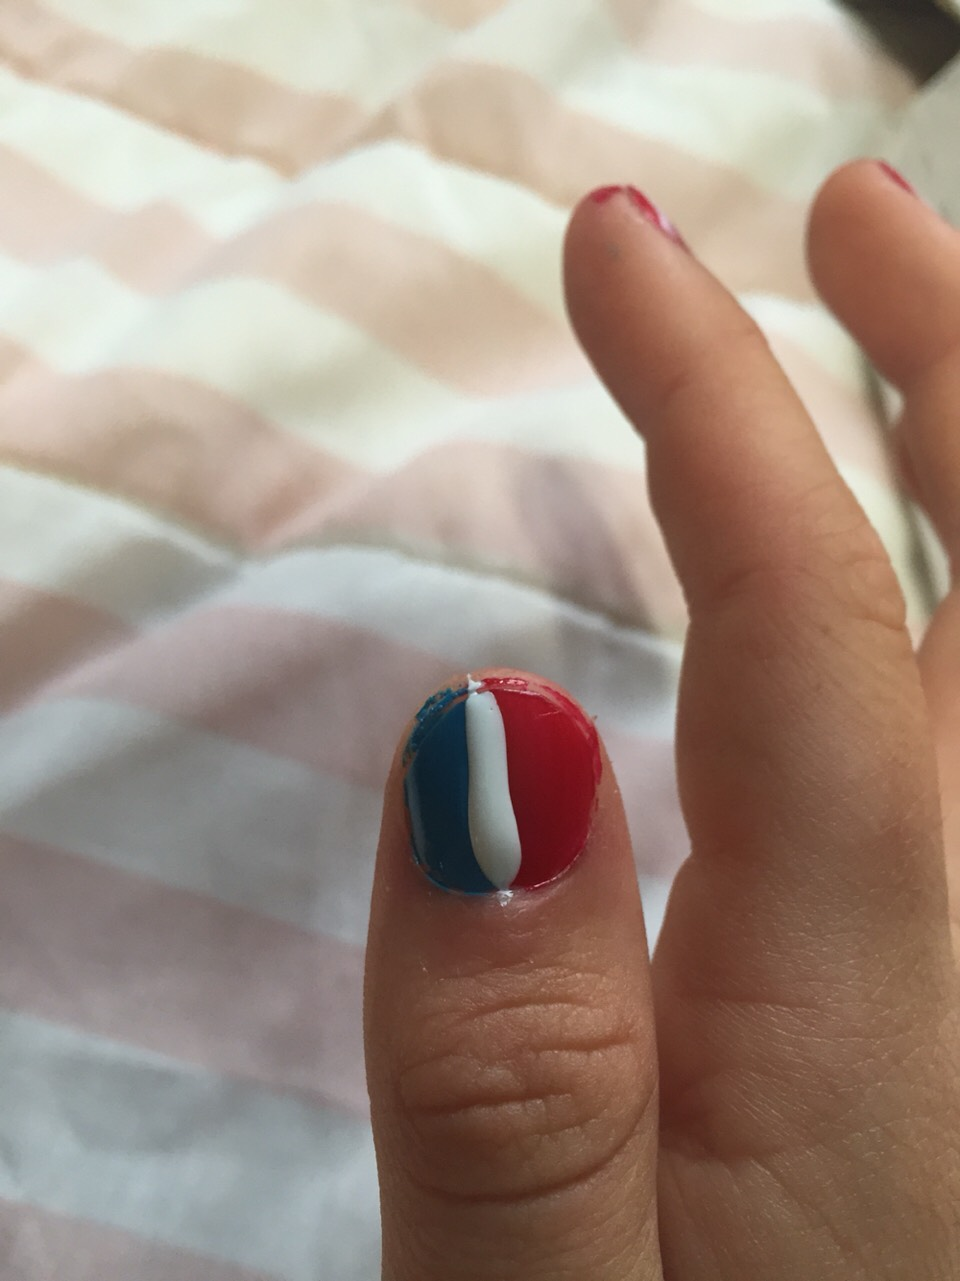 Make a white stripe with a think white brush between the red and blue polish